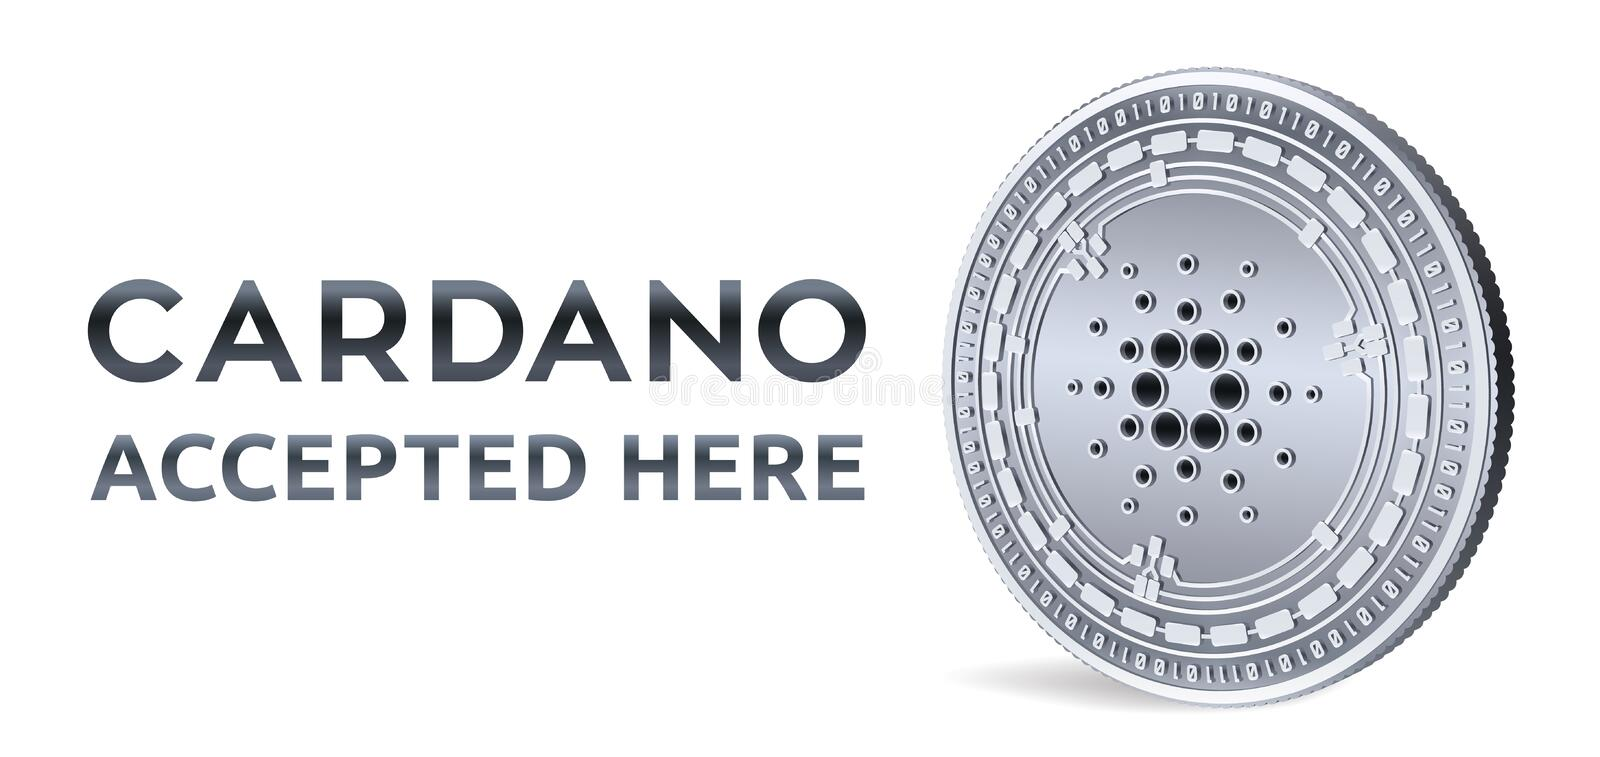 Cardano. Accepted sign emblem. Crypto currency. Silver coin with Cardano symbol isolated on white background. 3D isometric Physica stock illustration